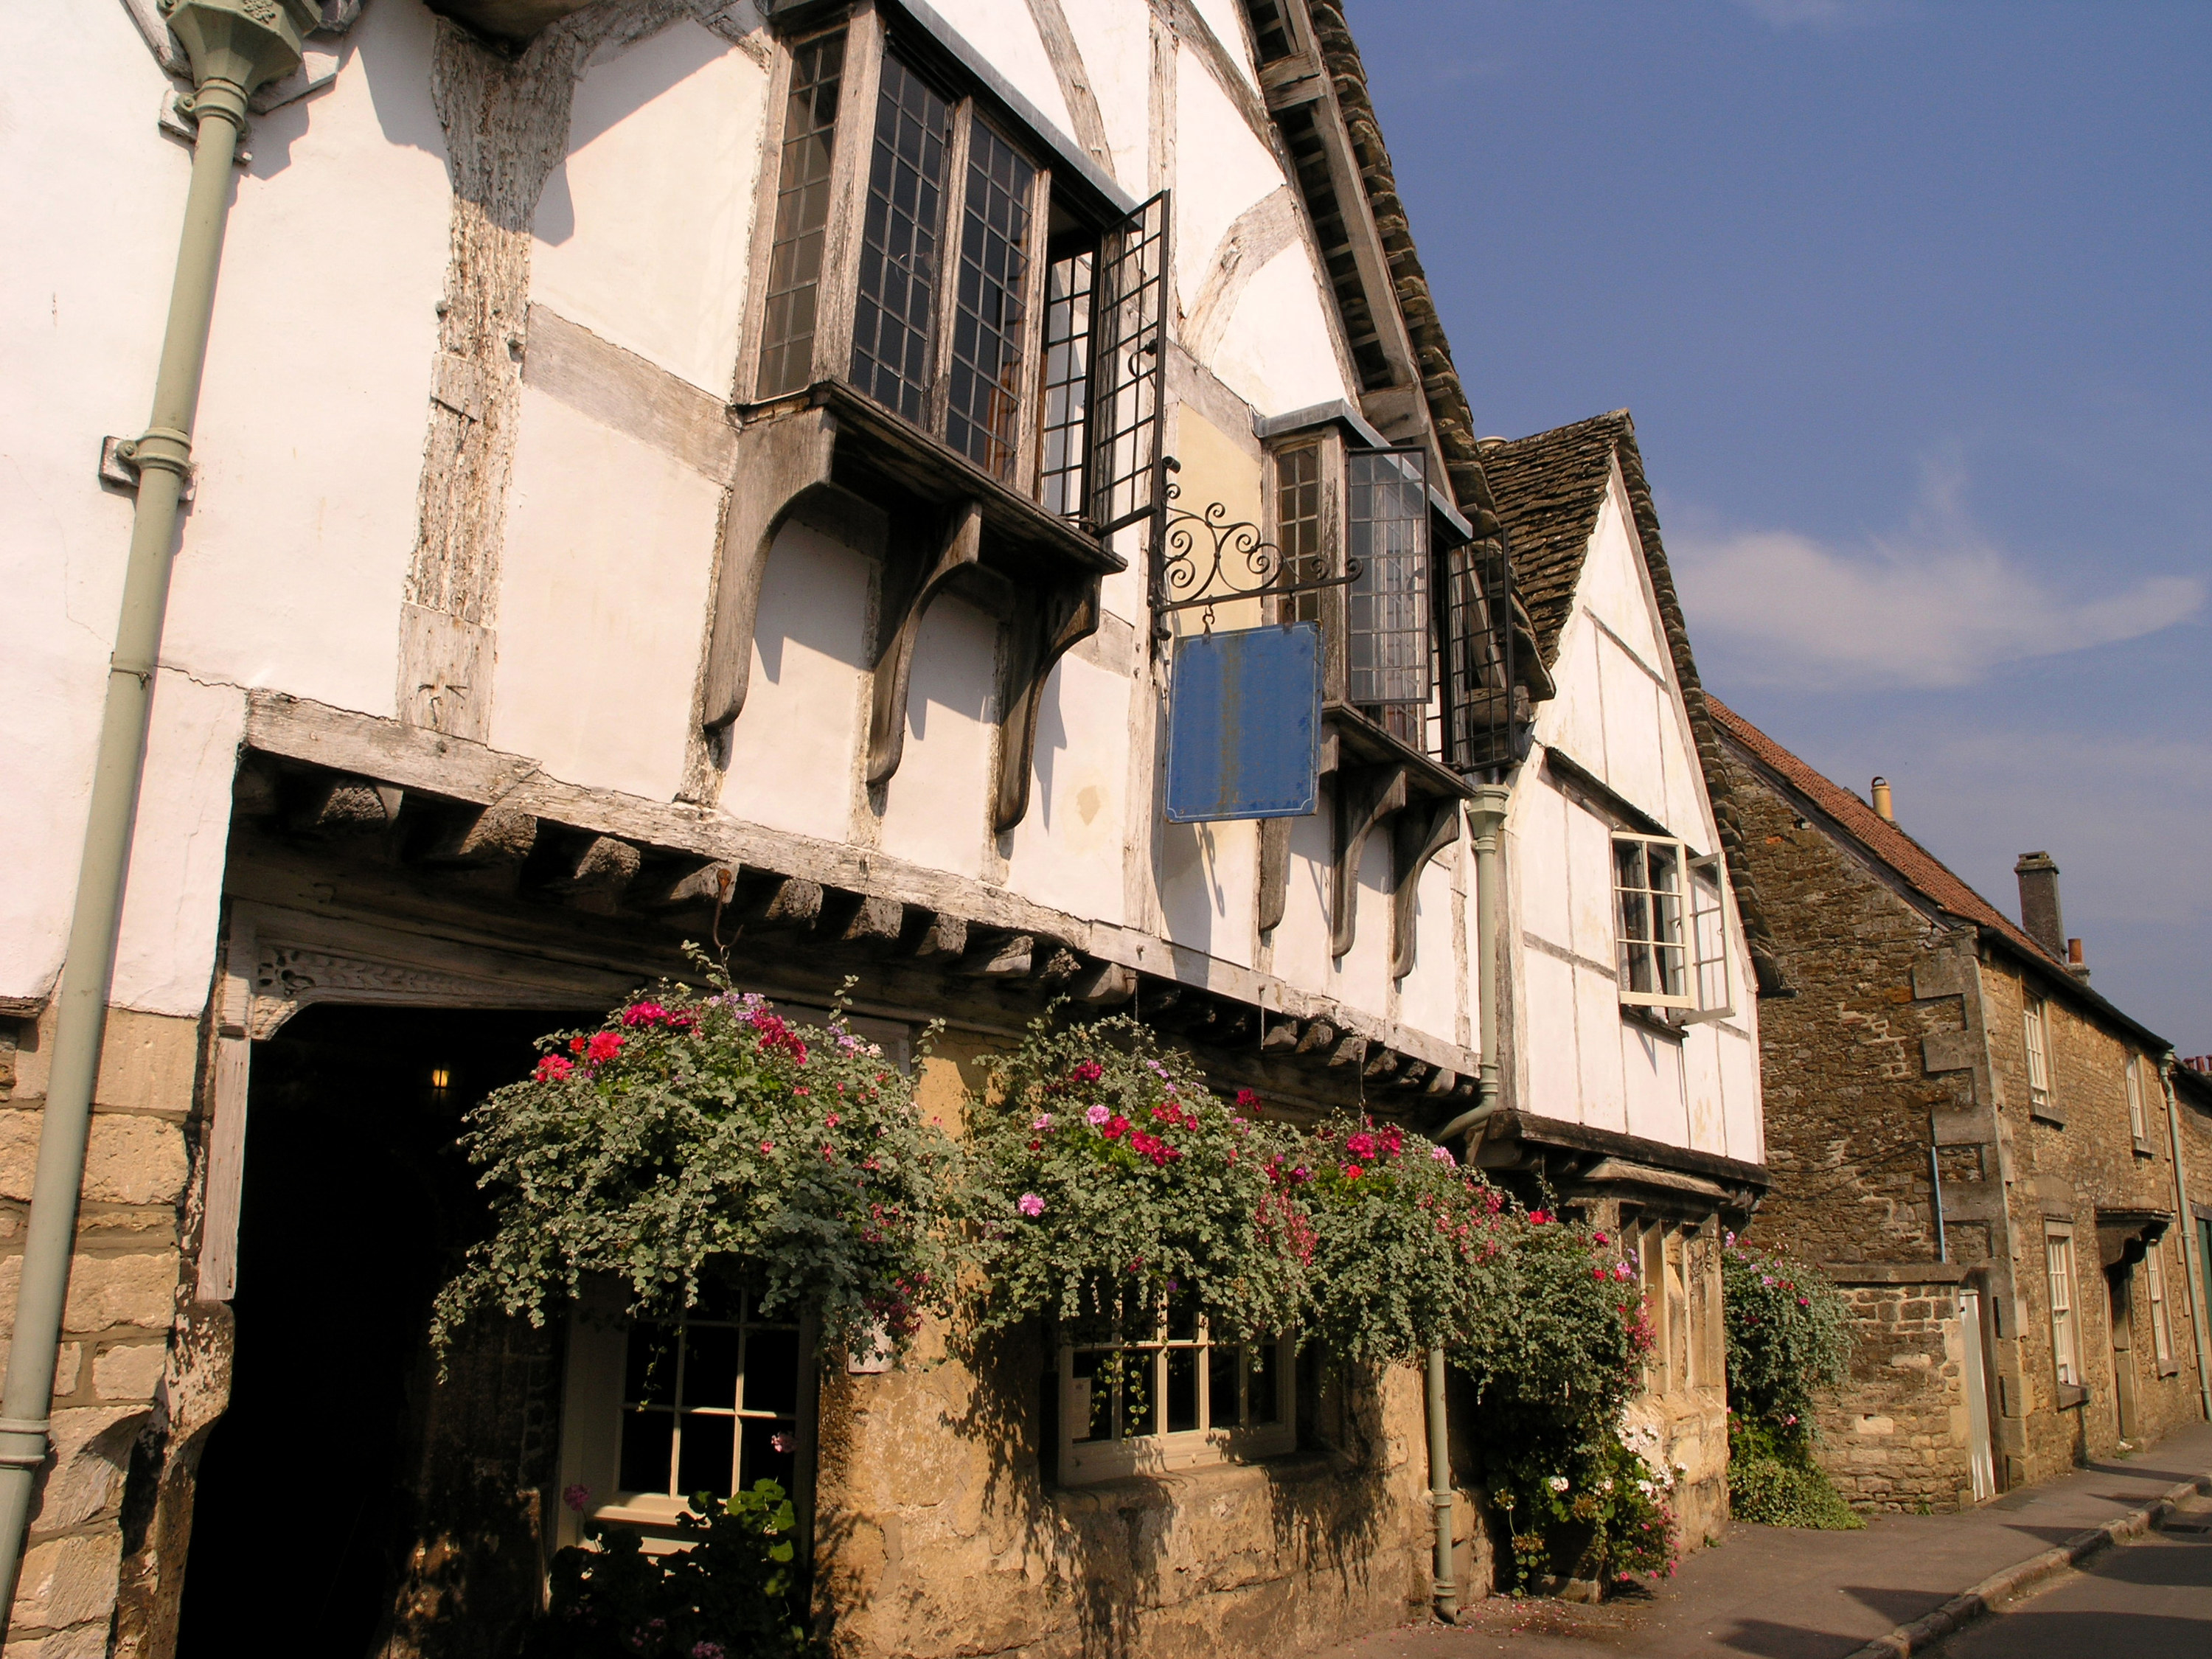 A traditional 15th century inn in Lacock, Wiltshire